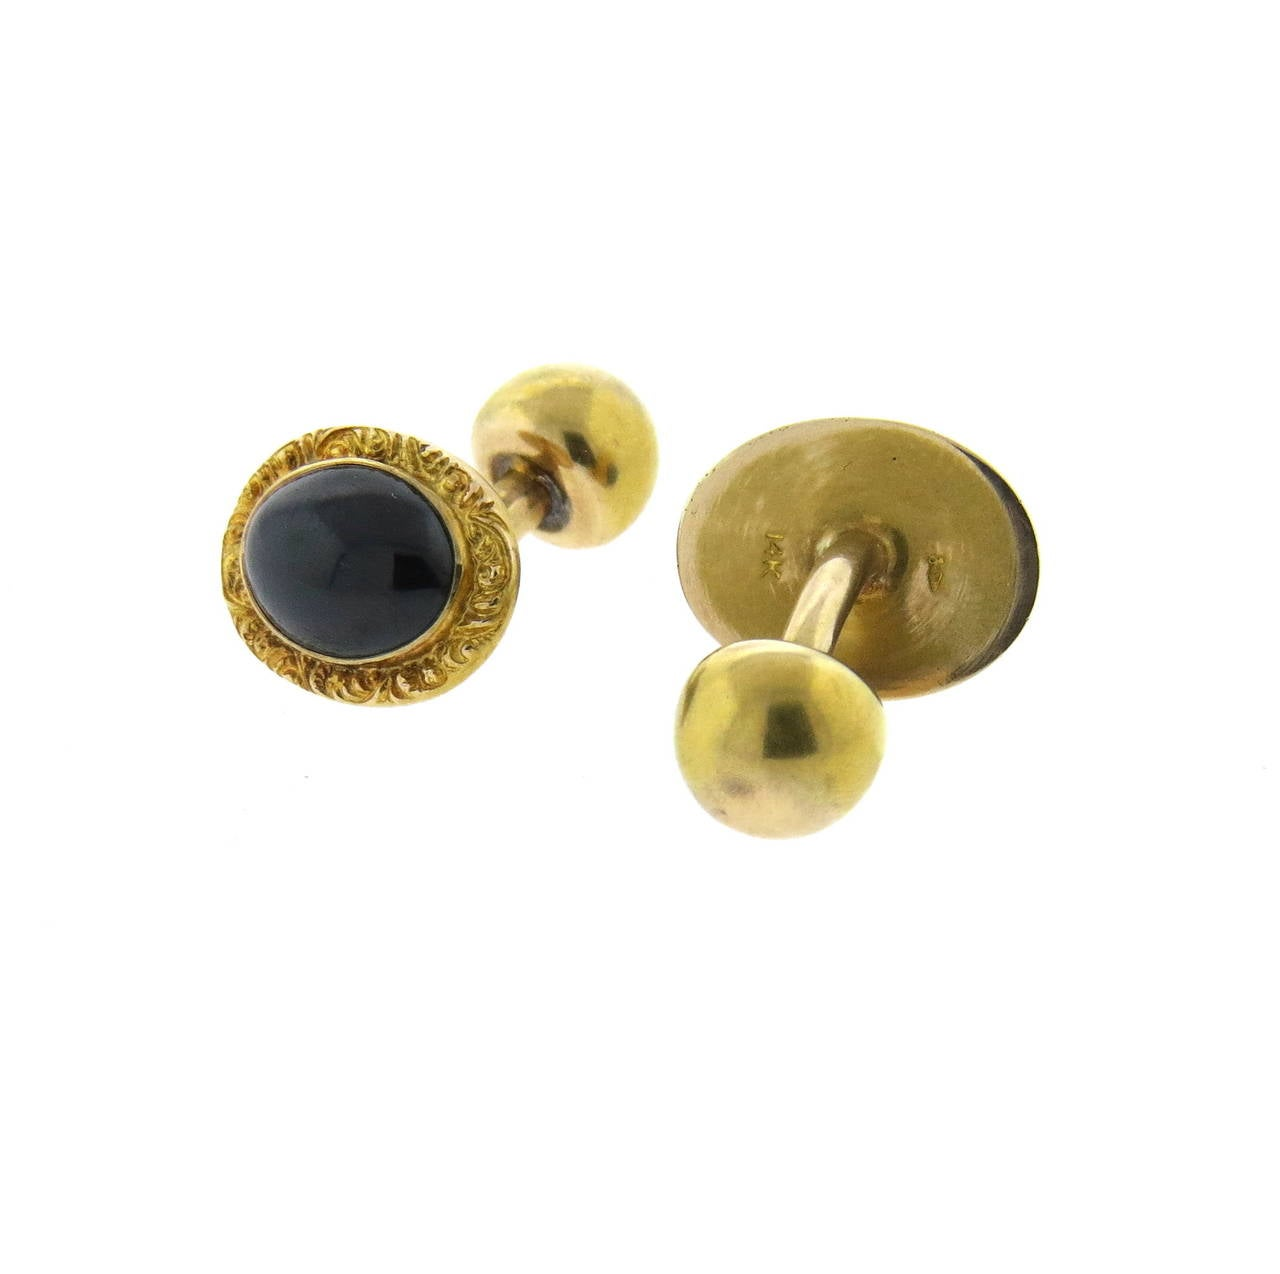 Antique 14k gold cufflinks with oval garnet cabochons, Cufflinks measure 16mm x 13mm. Weight - 7.1 grams